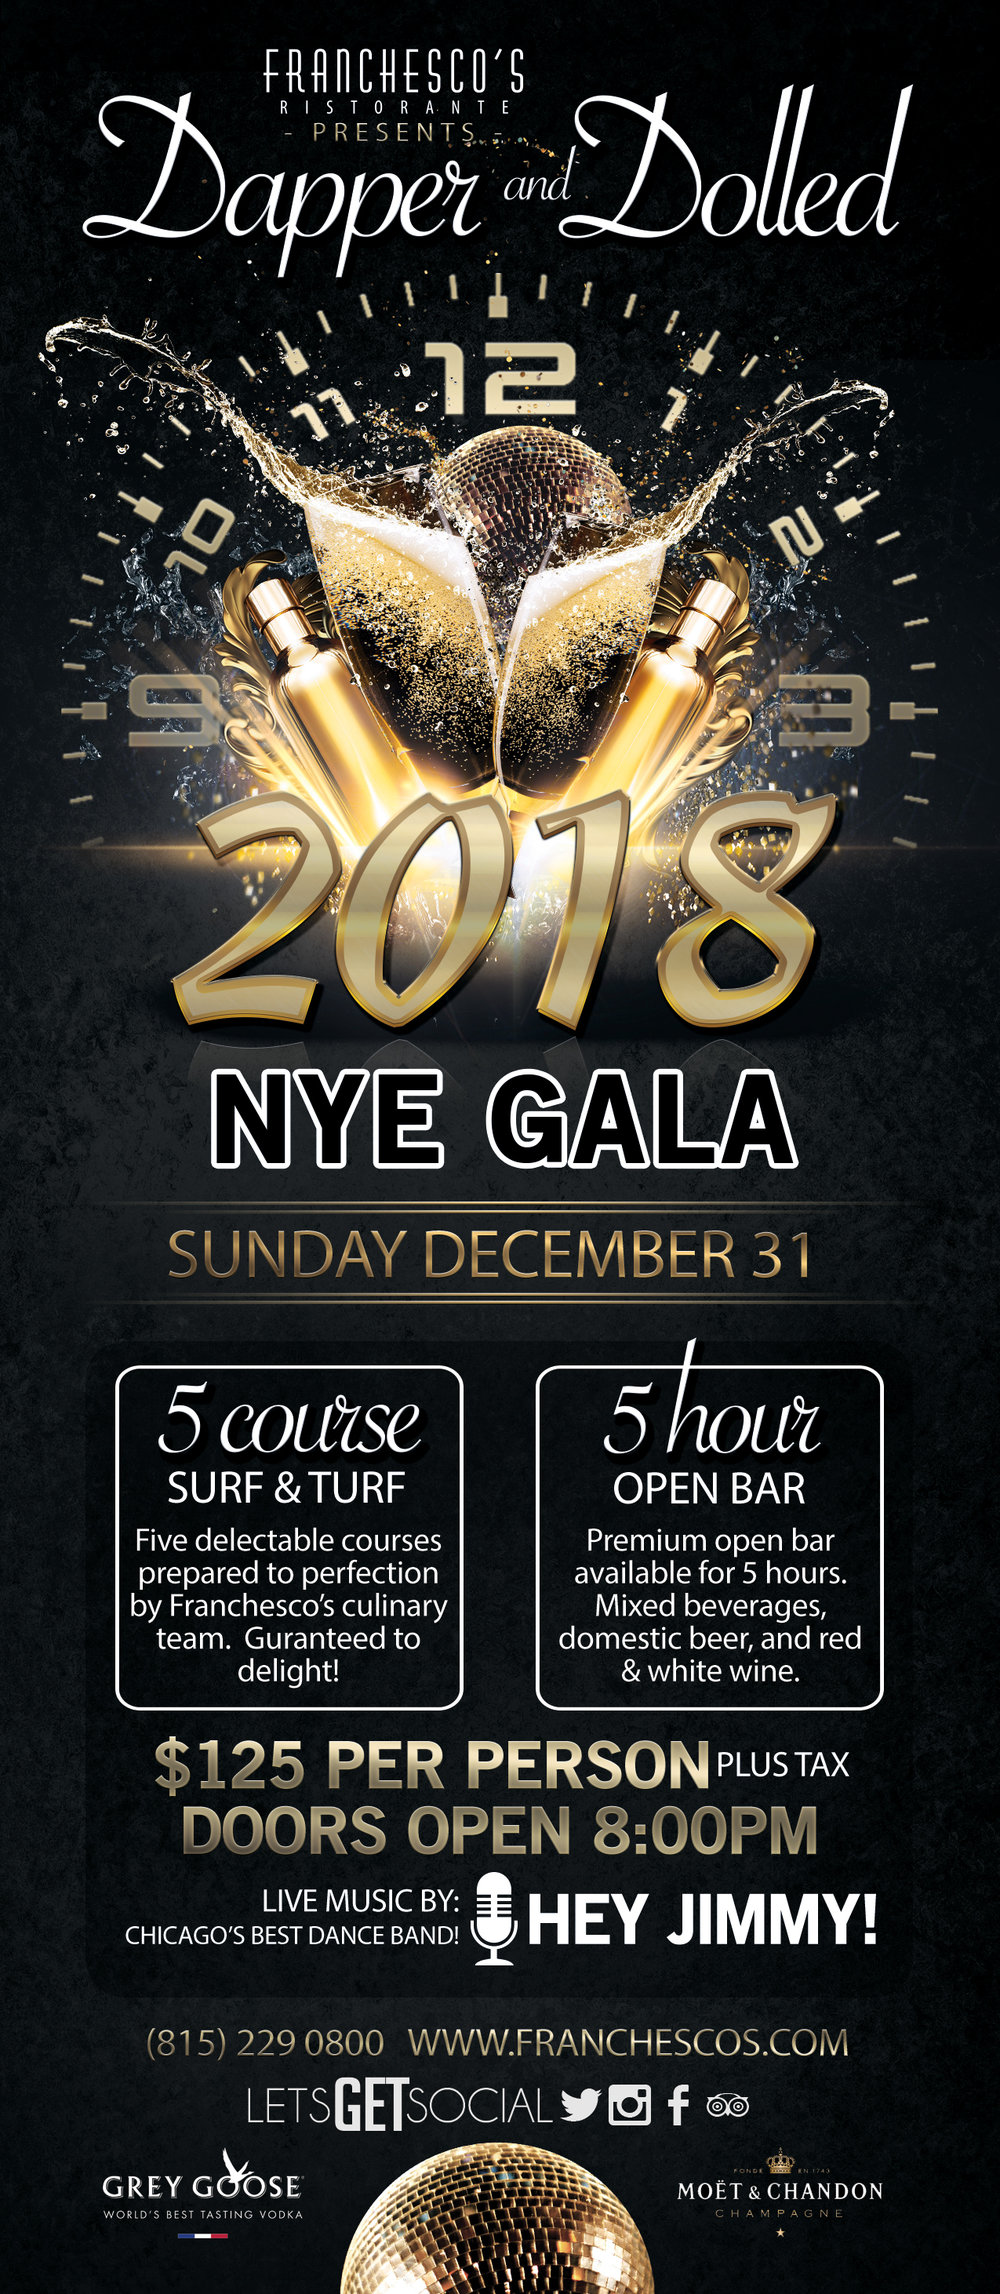 Franchescos New Years Flyer 2018.jpg